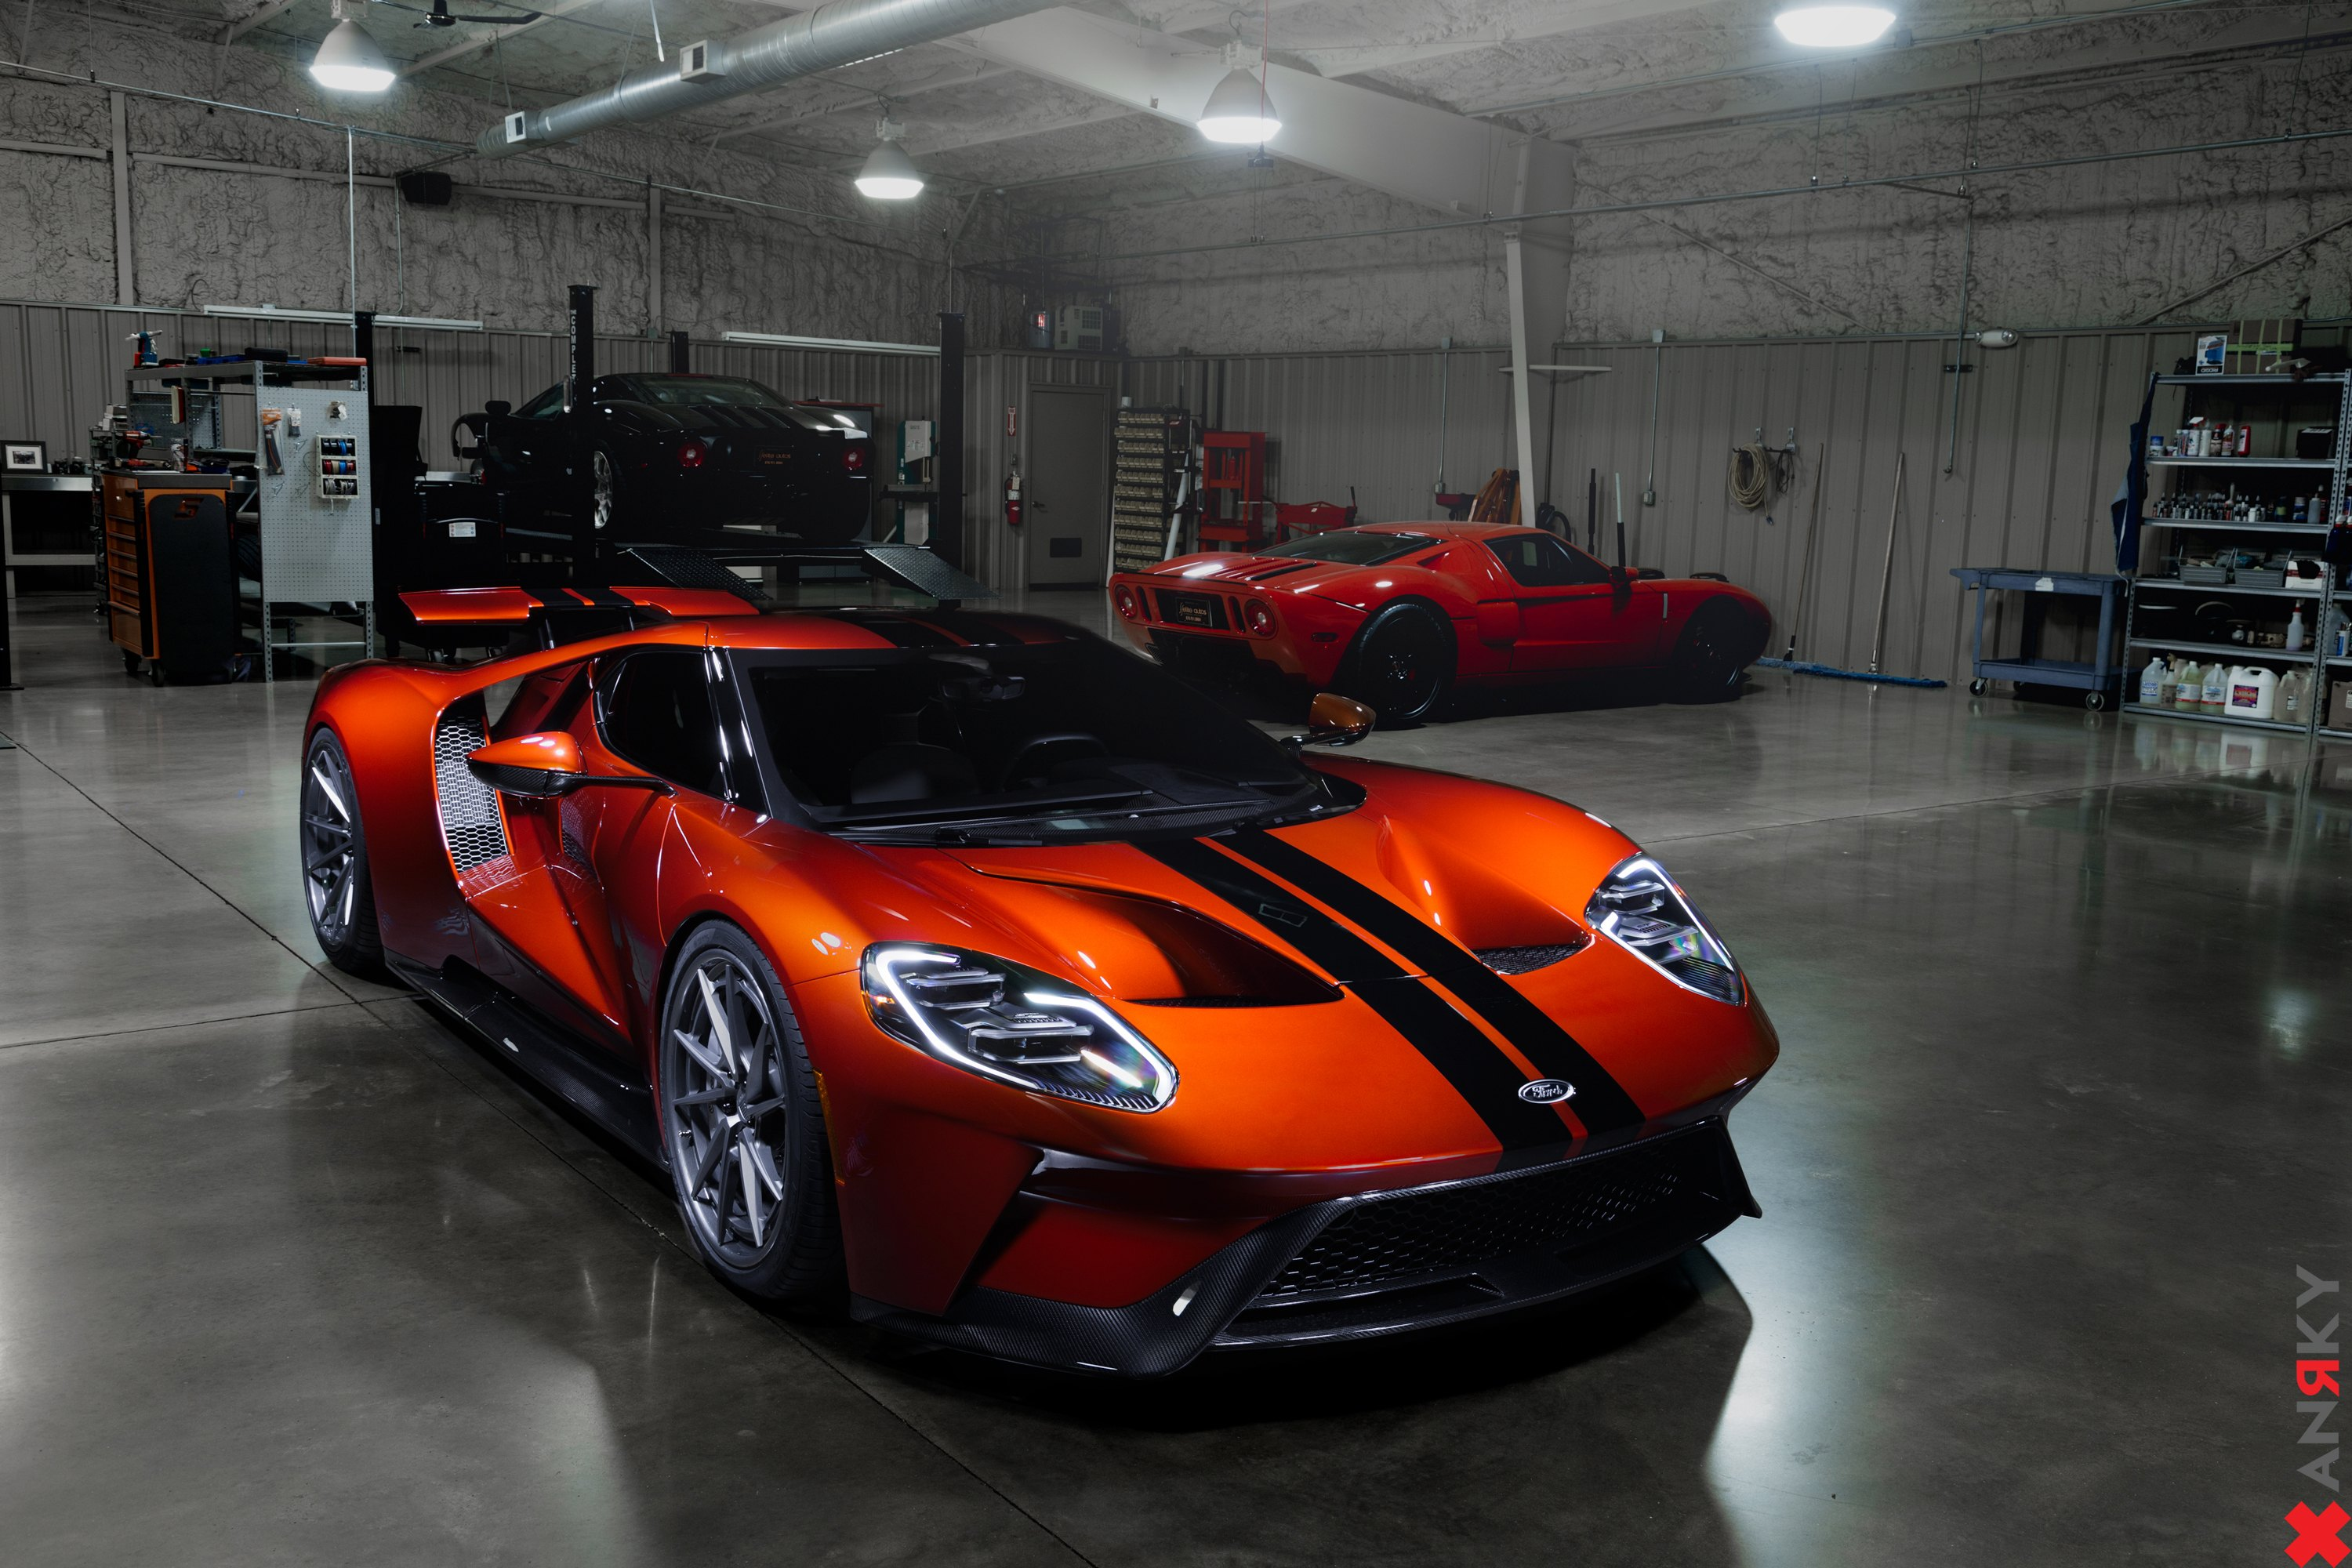 Orange Ford Gt With Carbon Fiber Front Bumper Photo By Anrky Wheels